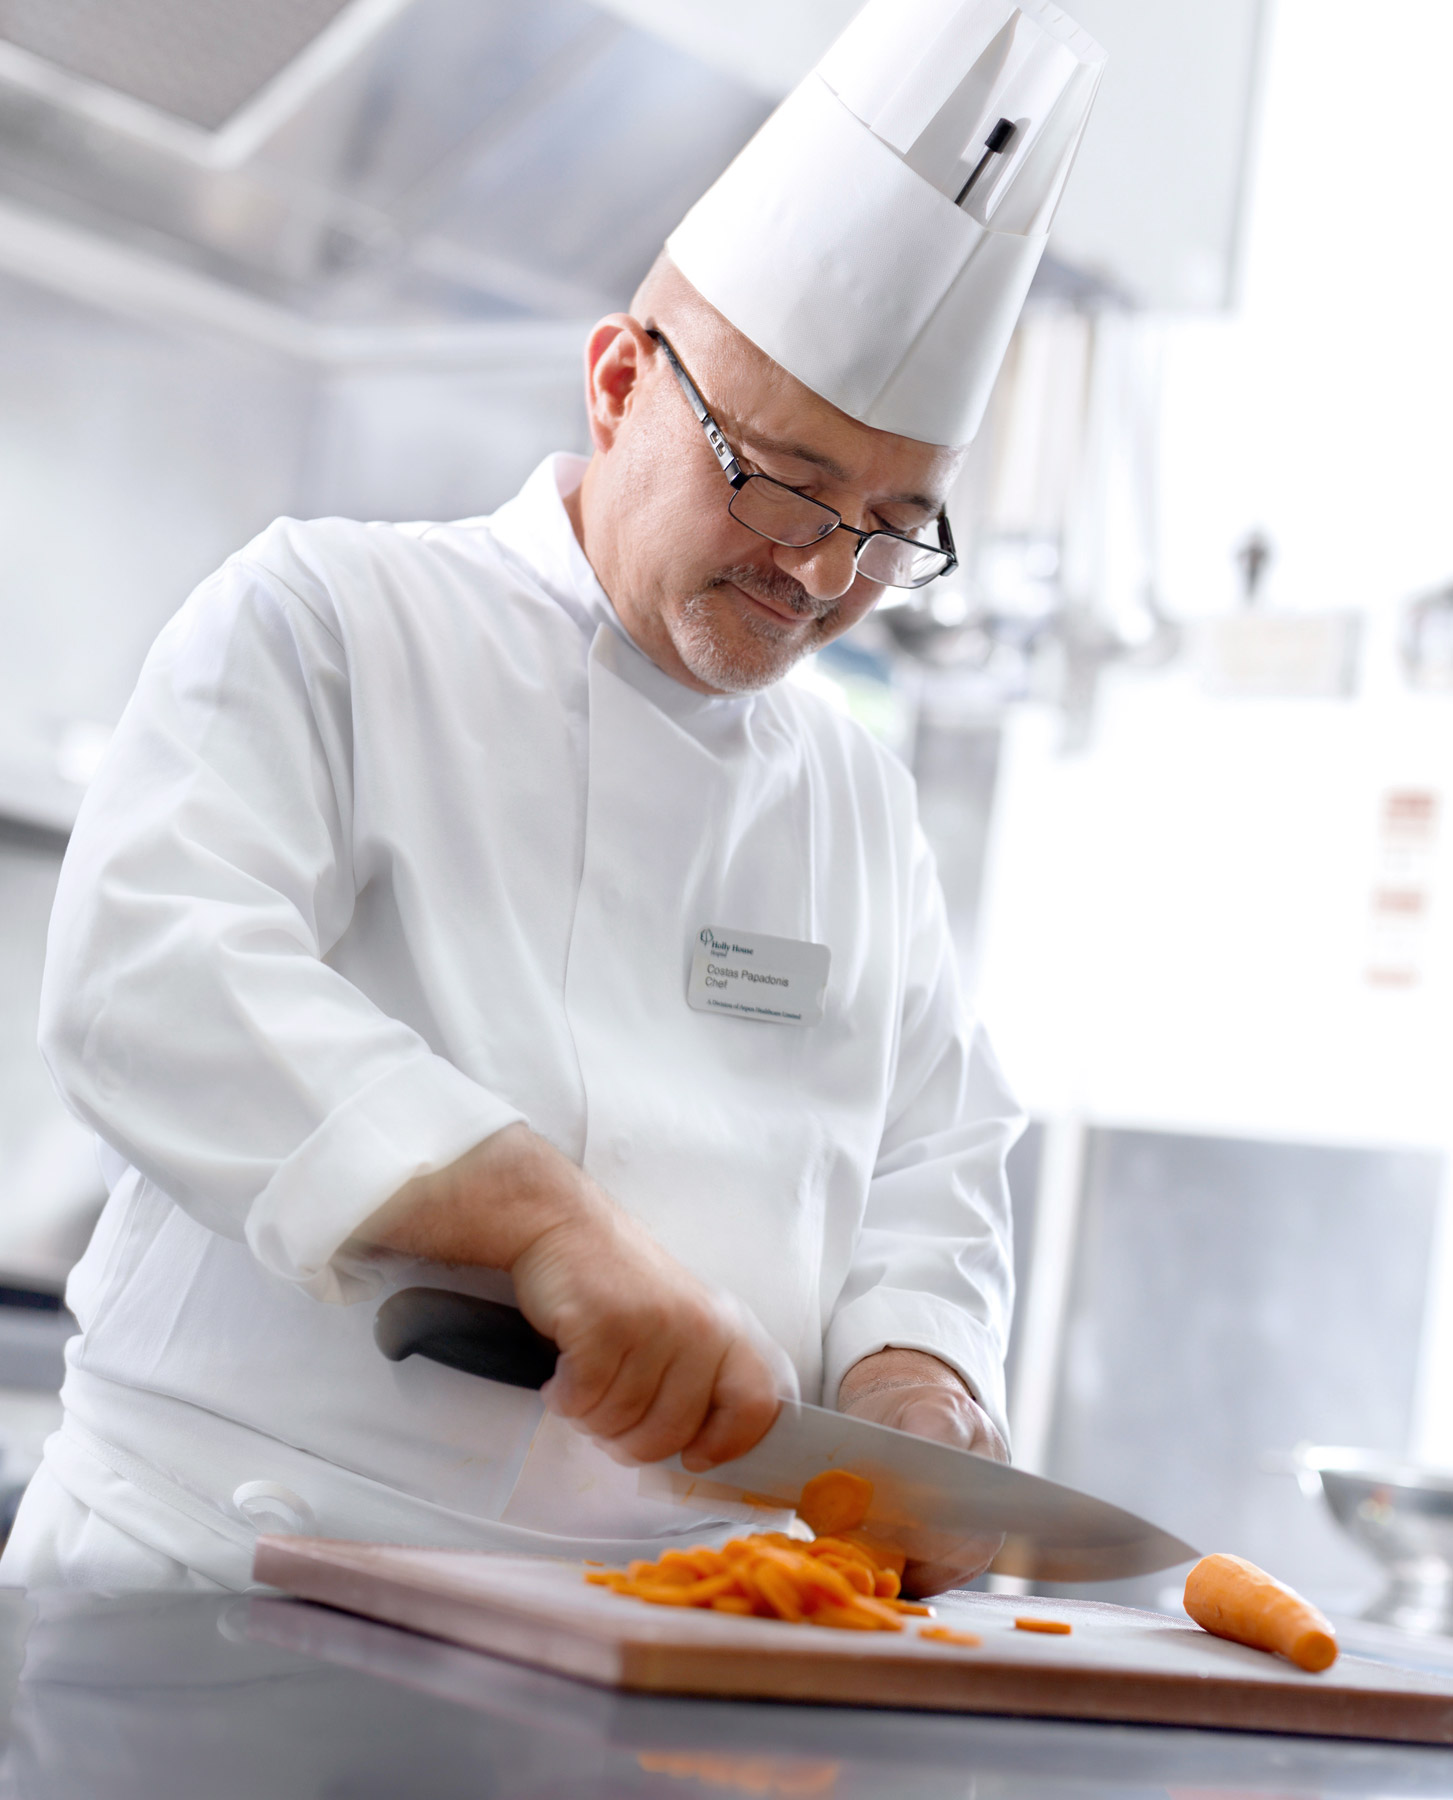 Chef chopping carrots in the hospital kitchen